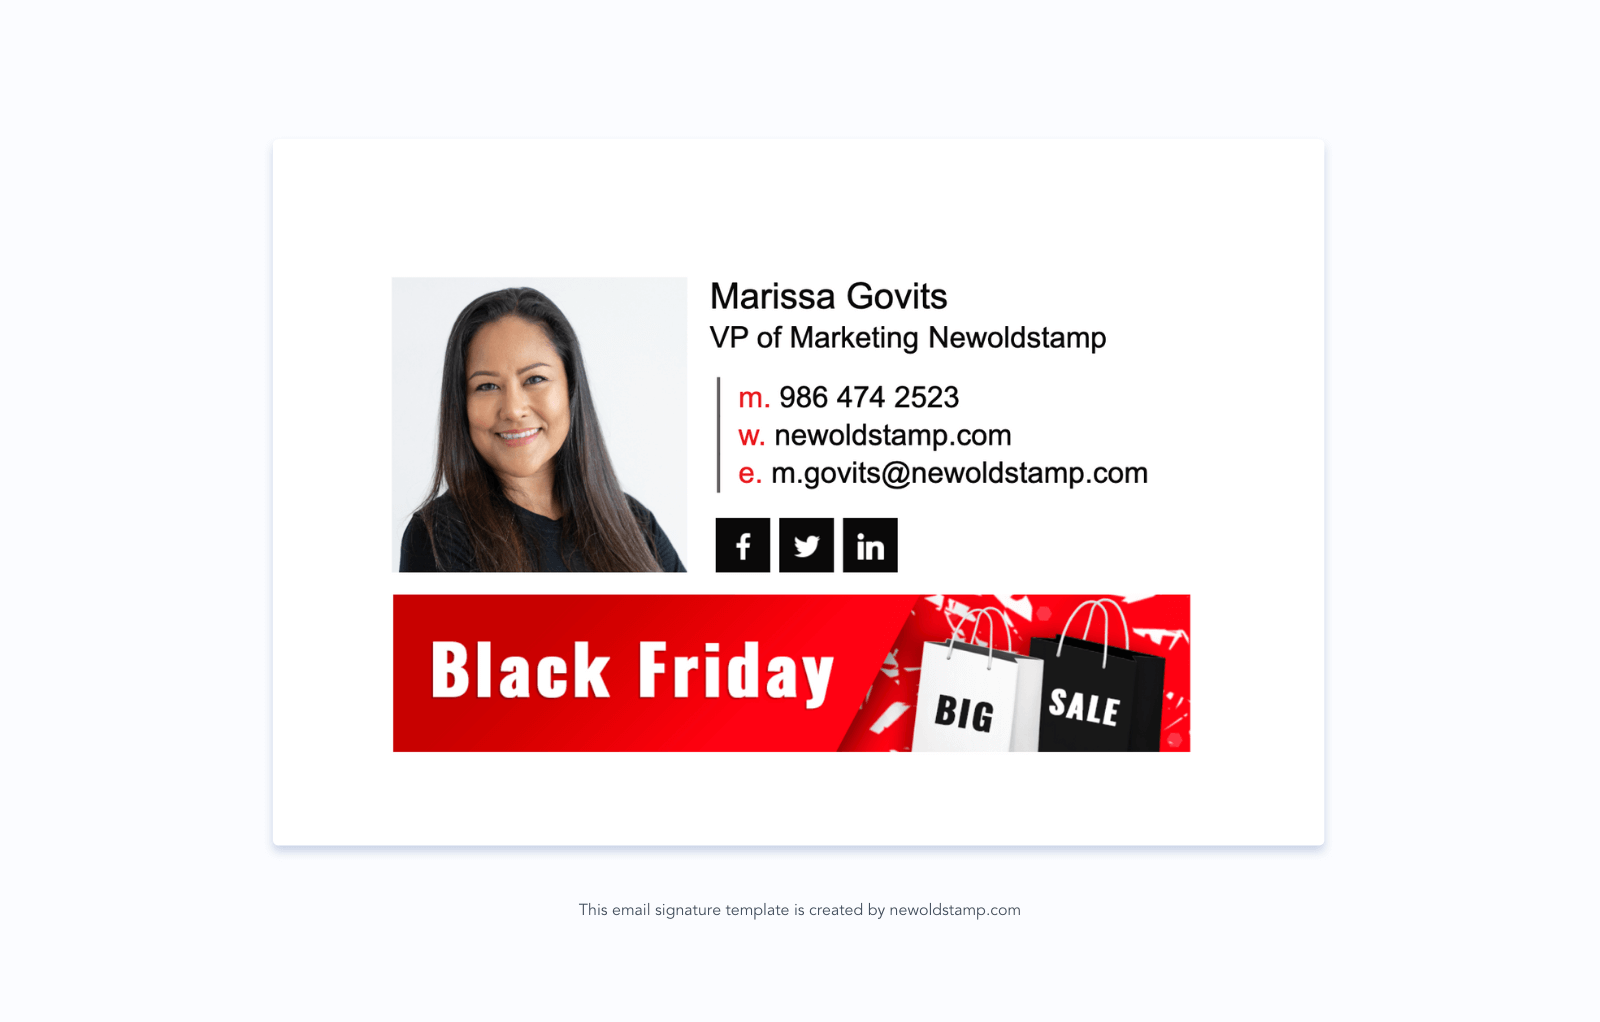 Black Friday email signature banner